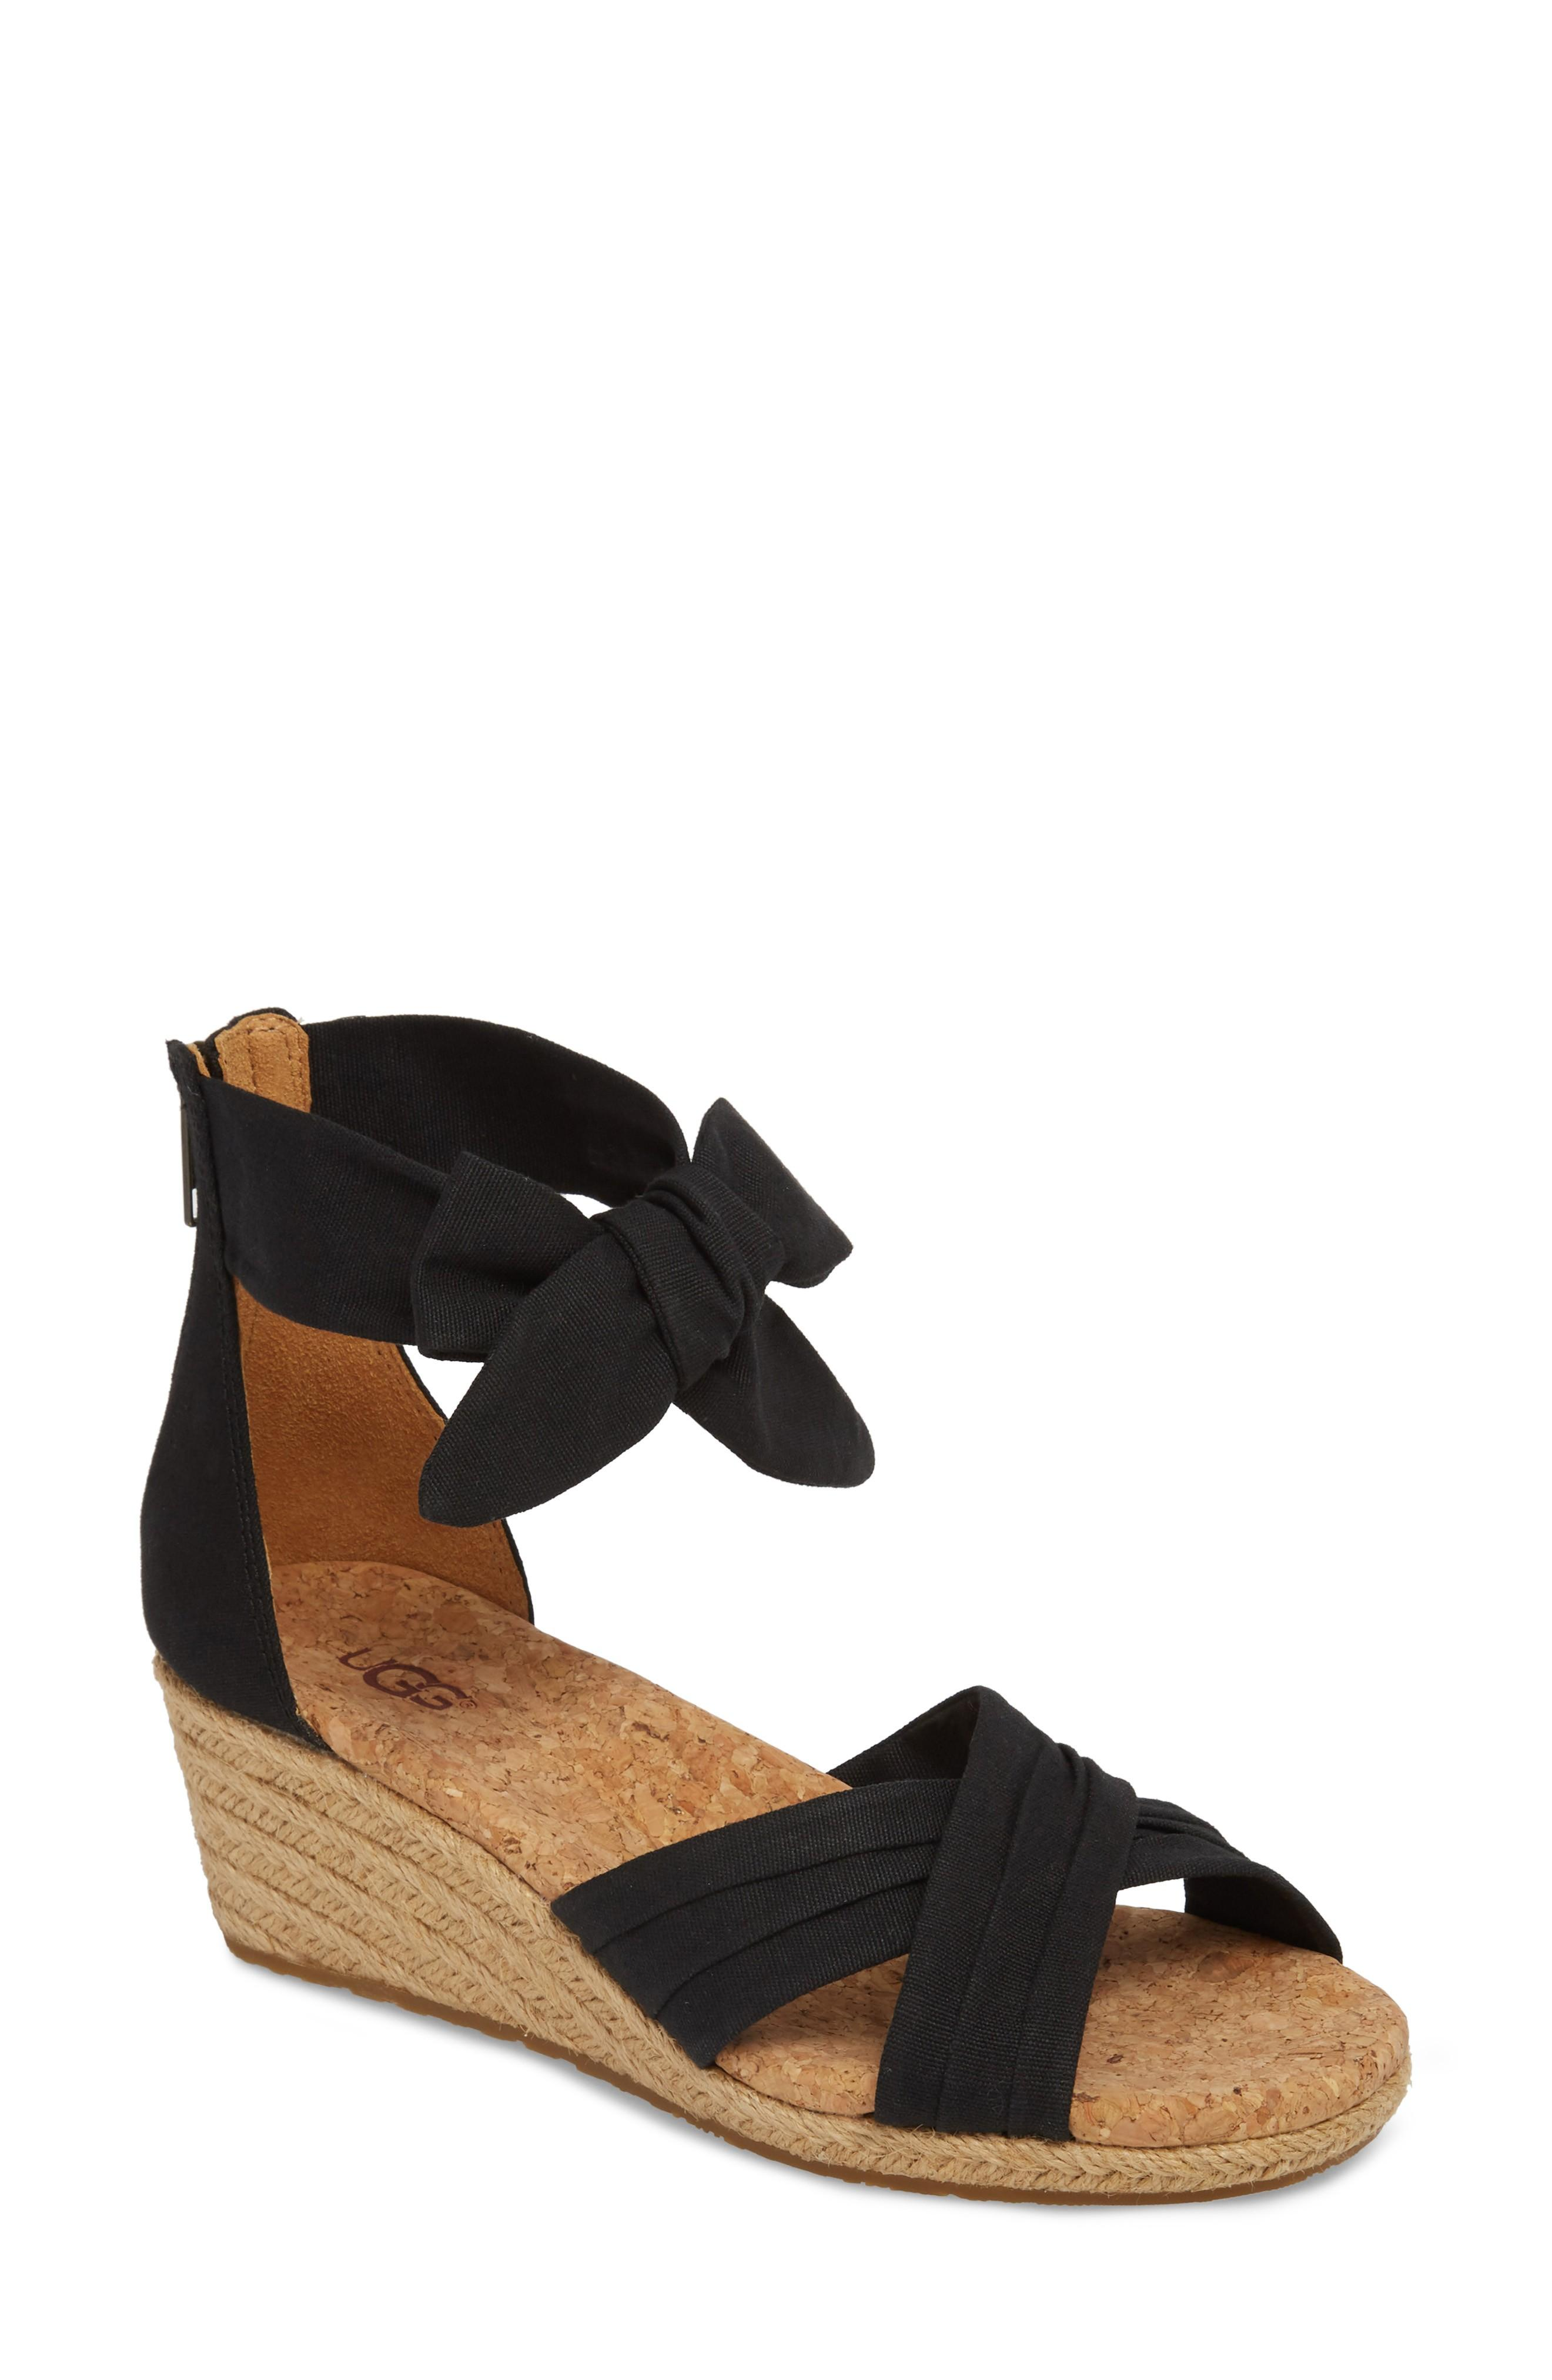 faec40daa9a Canvas straps and a jute-wrapped wedge make this sandal an earthy yet  sophisticated must-have. Style Name  Ugg Traci Espadrille Wedge Sandal  (Women).